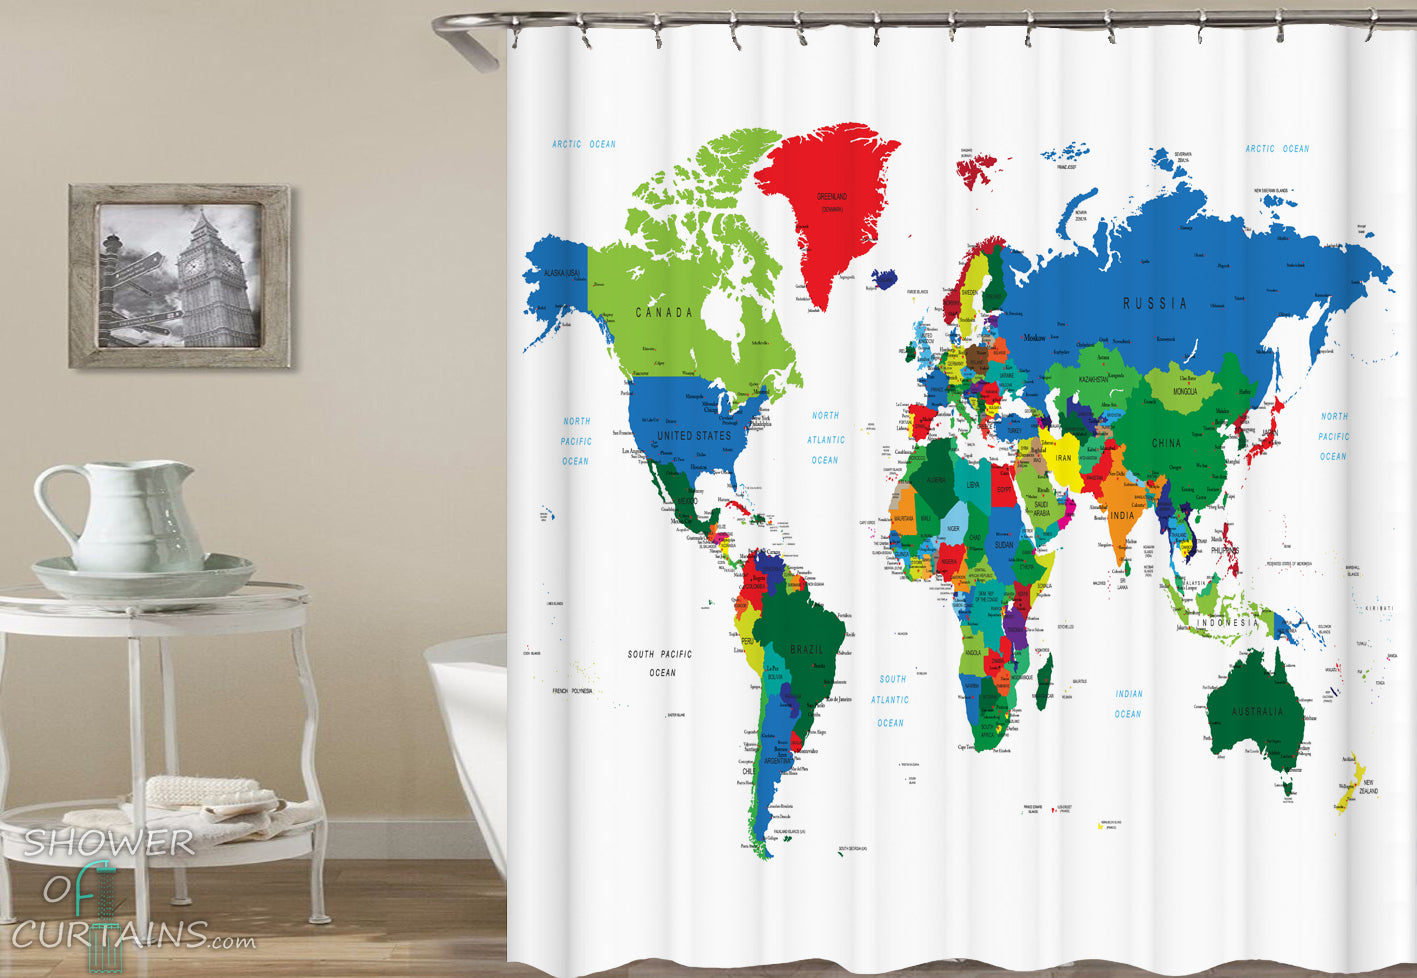 shower curtain map of the world Shower Curtains Multi Colored World Map Shower Of Curtains